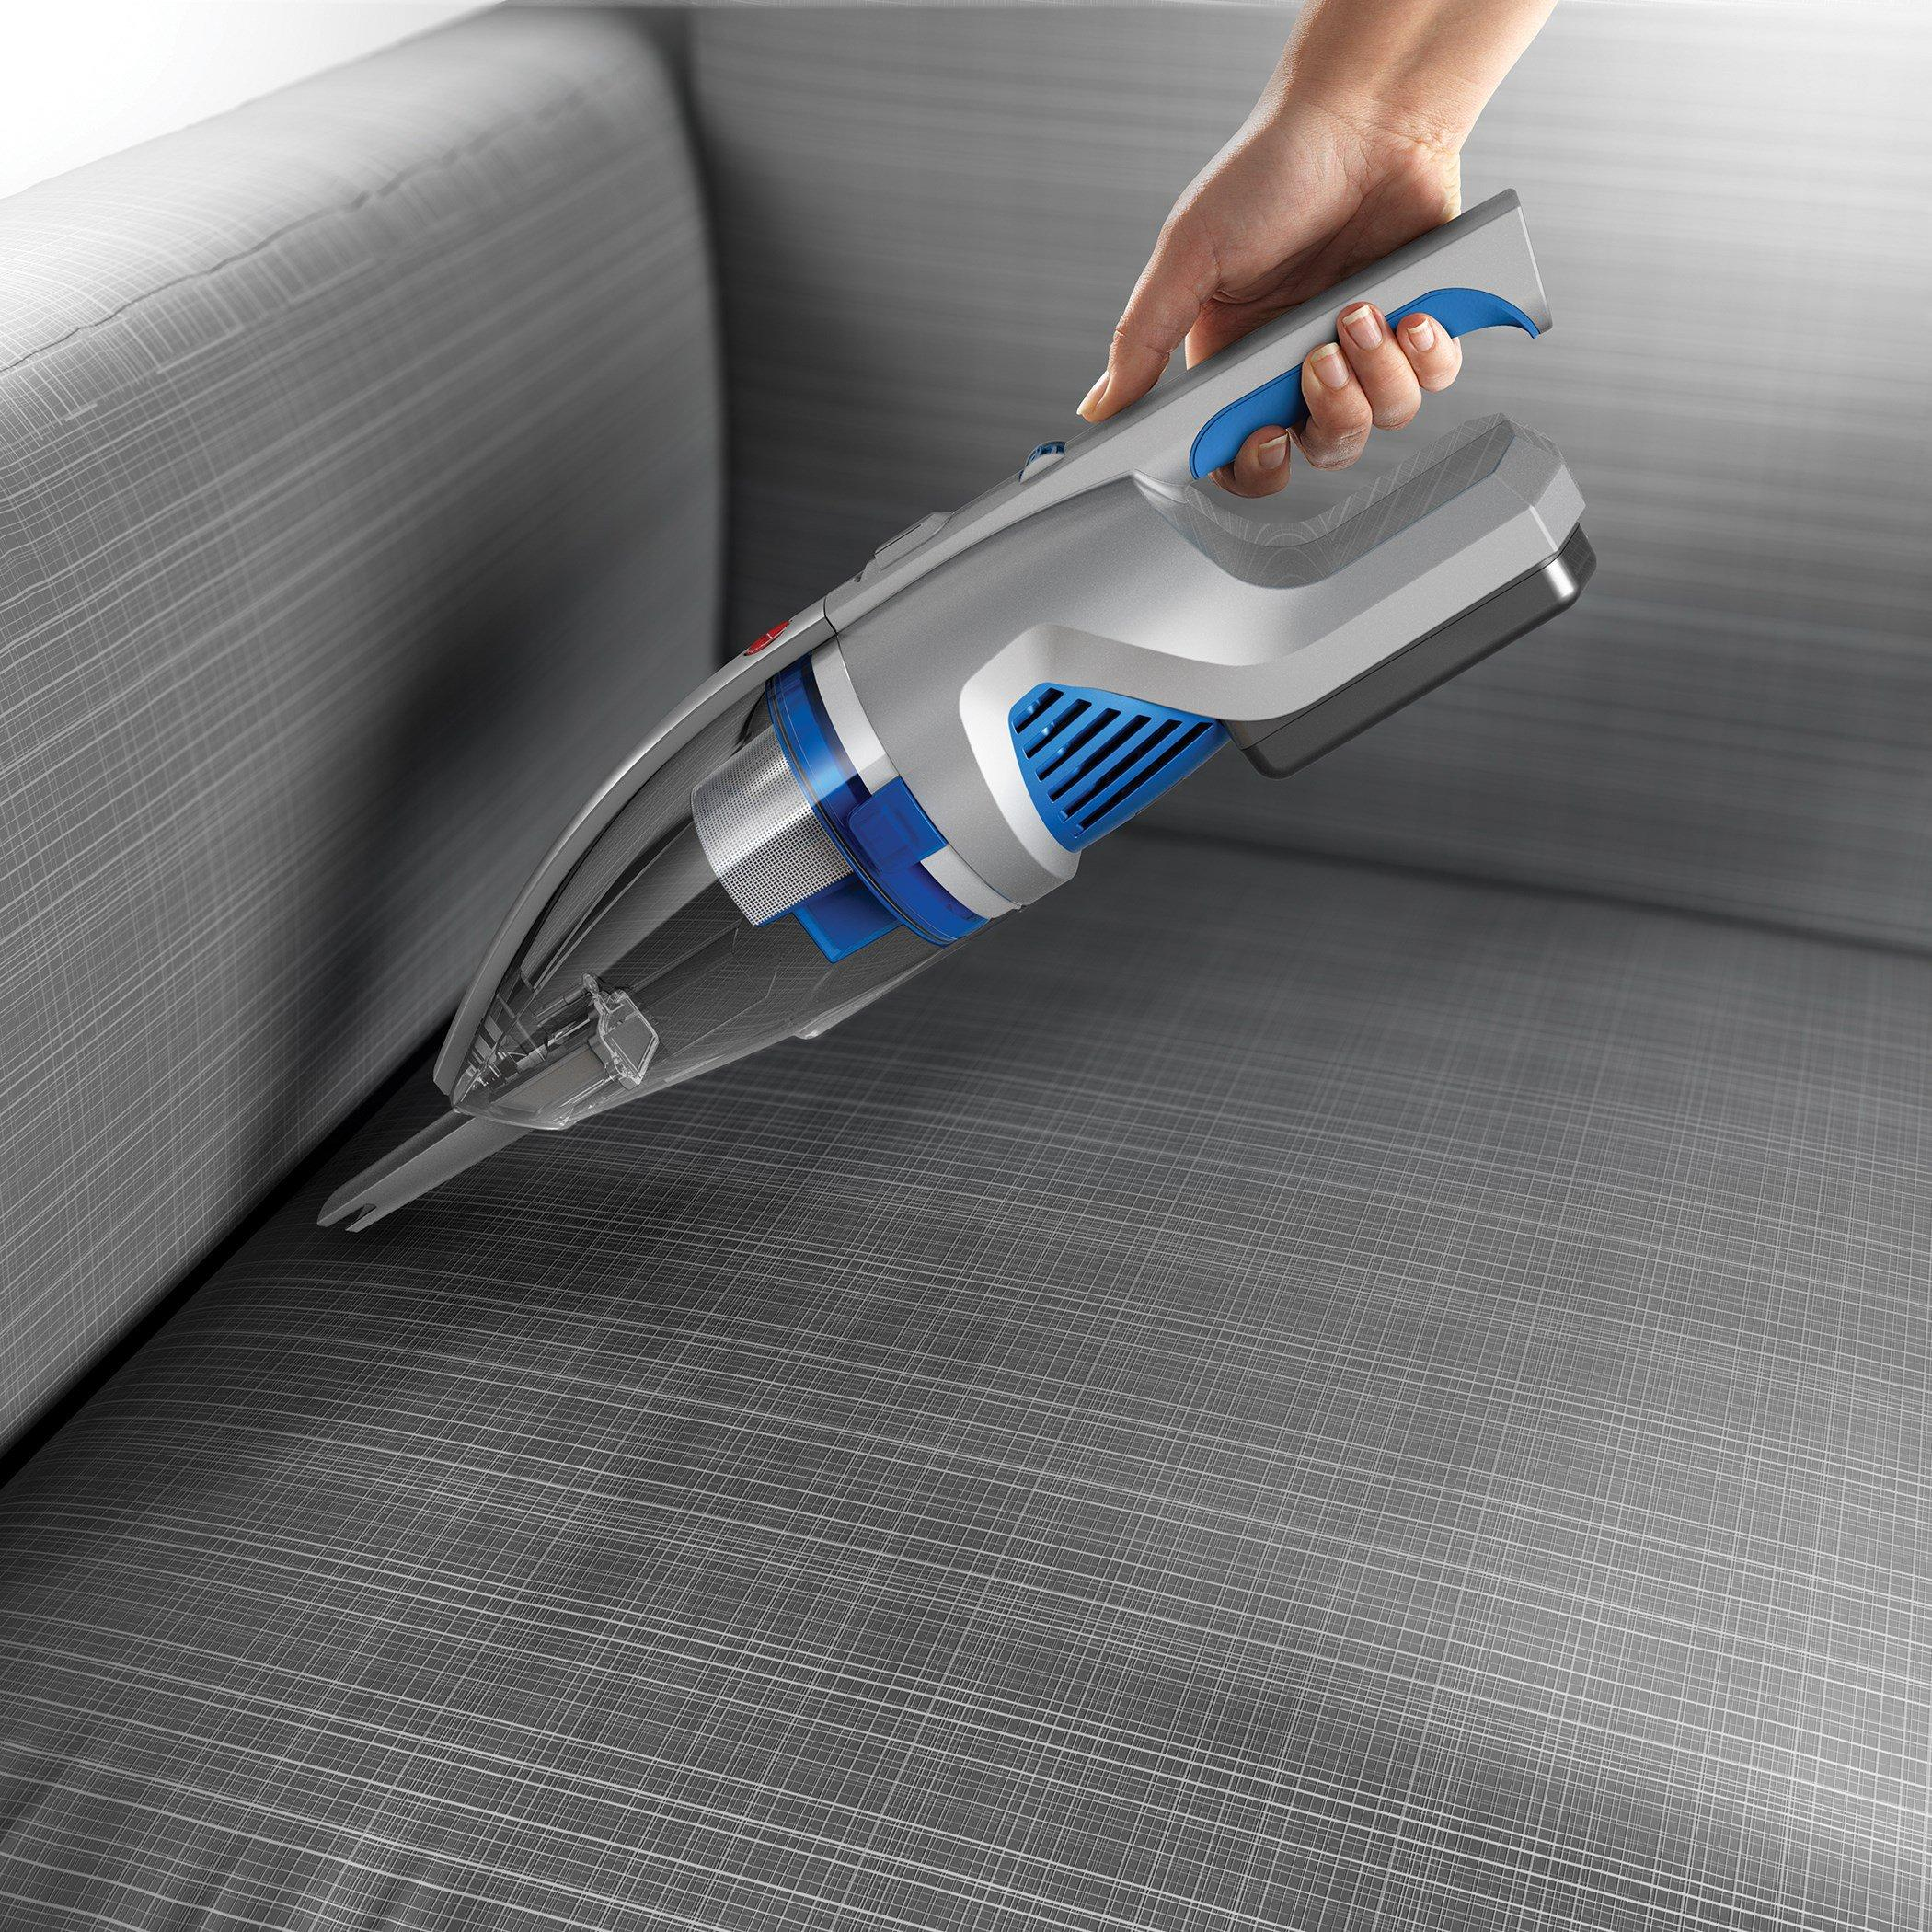 Air Cordless Handheld Vacuum (Battery Not Included)3